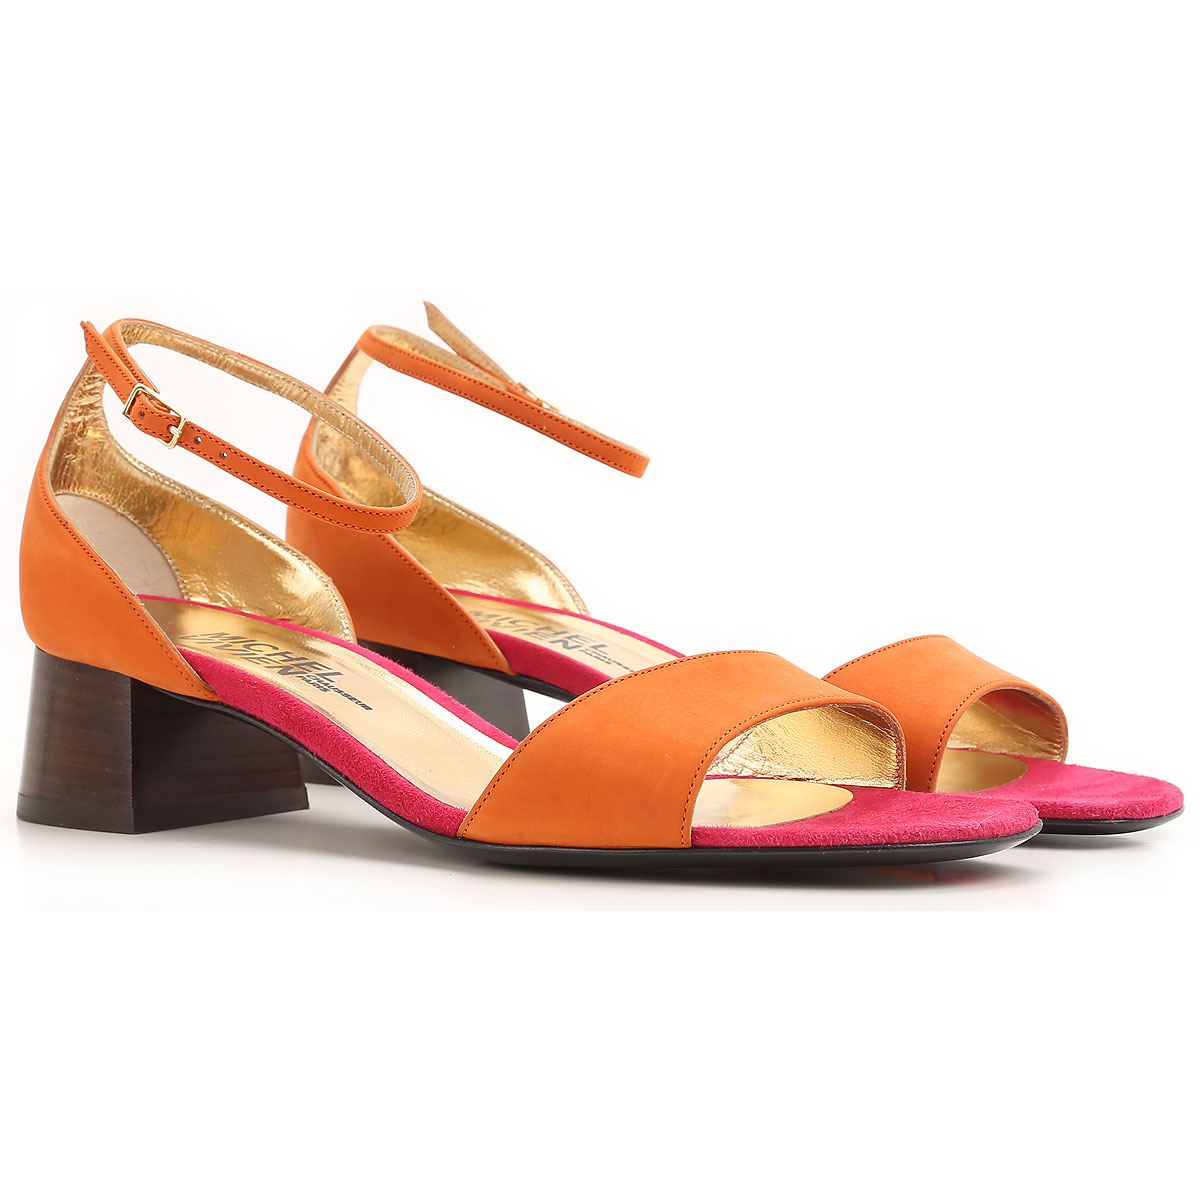 Michel Vivien Sandals for Women On Sale in Outlet, Orange, Suede leather, 2019, 10 6 8